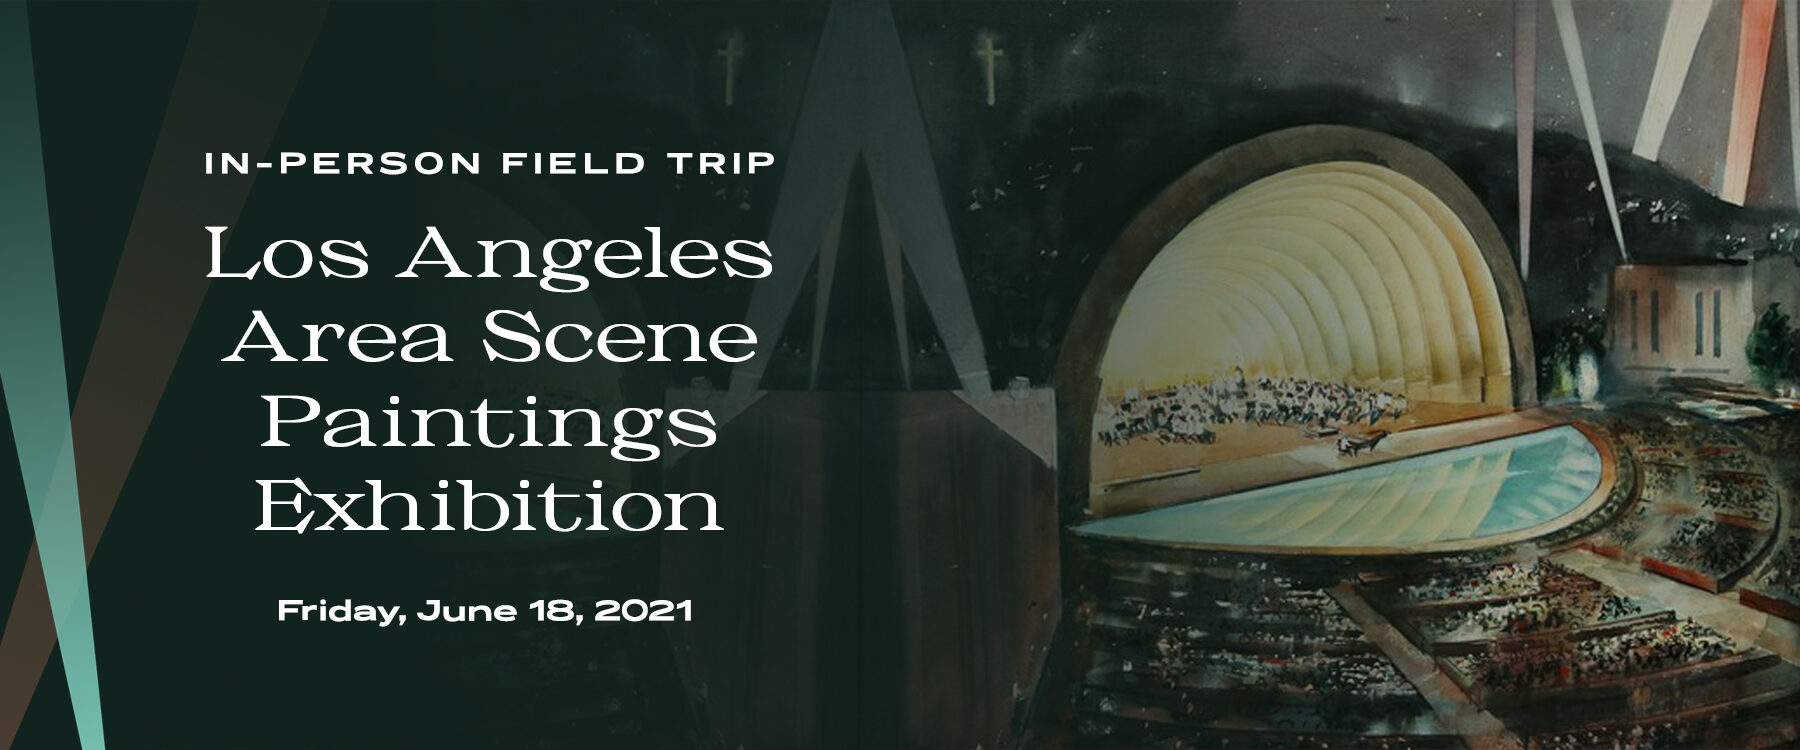 In-Person Field Trip Los Angeles Area Scene Paintings Exhibition over background Millard Sheets painting of Hollywood Bowl